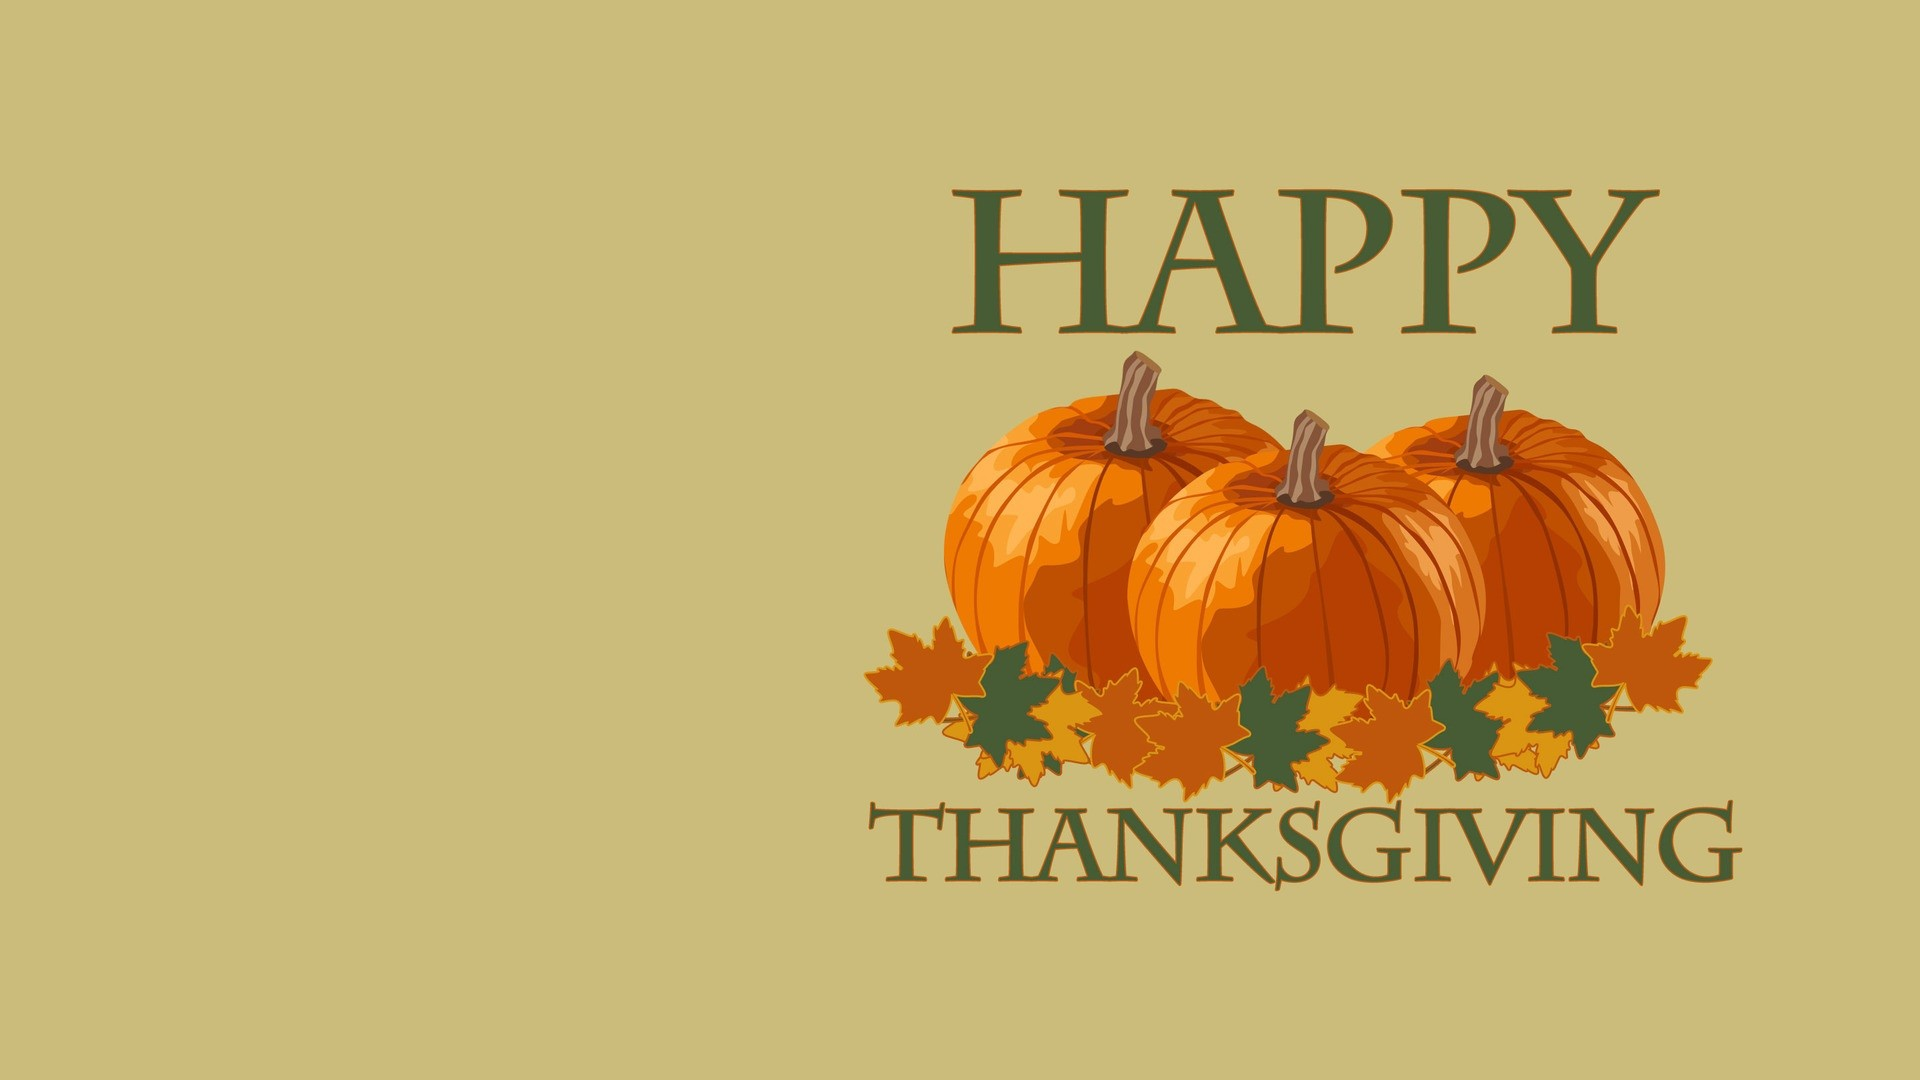 Res: 1920x1080, 74 entries in Thanksgiving Day Wallpapers group